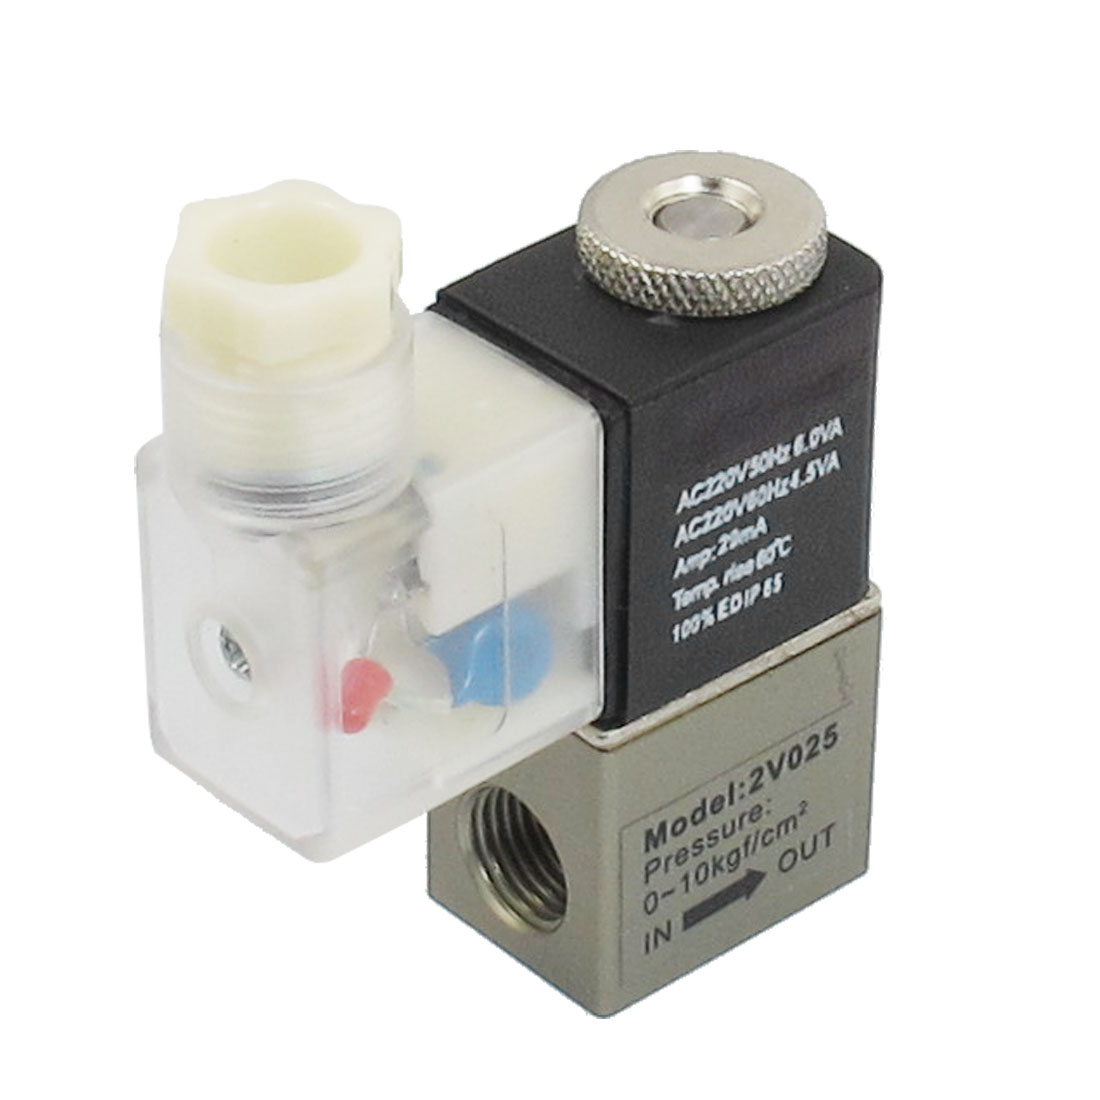 AC 220V 2 Position 2 Way Pneumatic Electromagnetic Solenoid Valve G1/4""